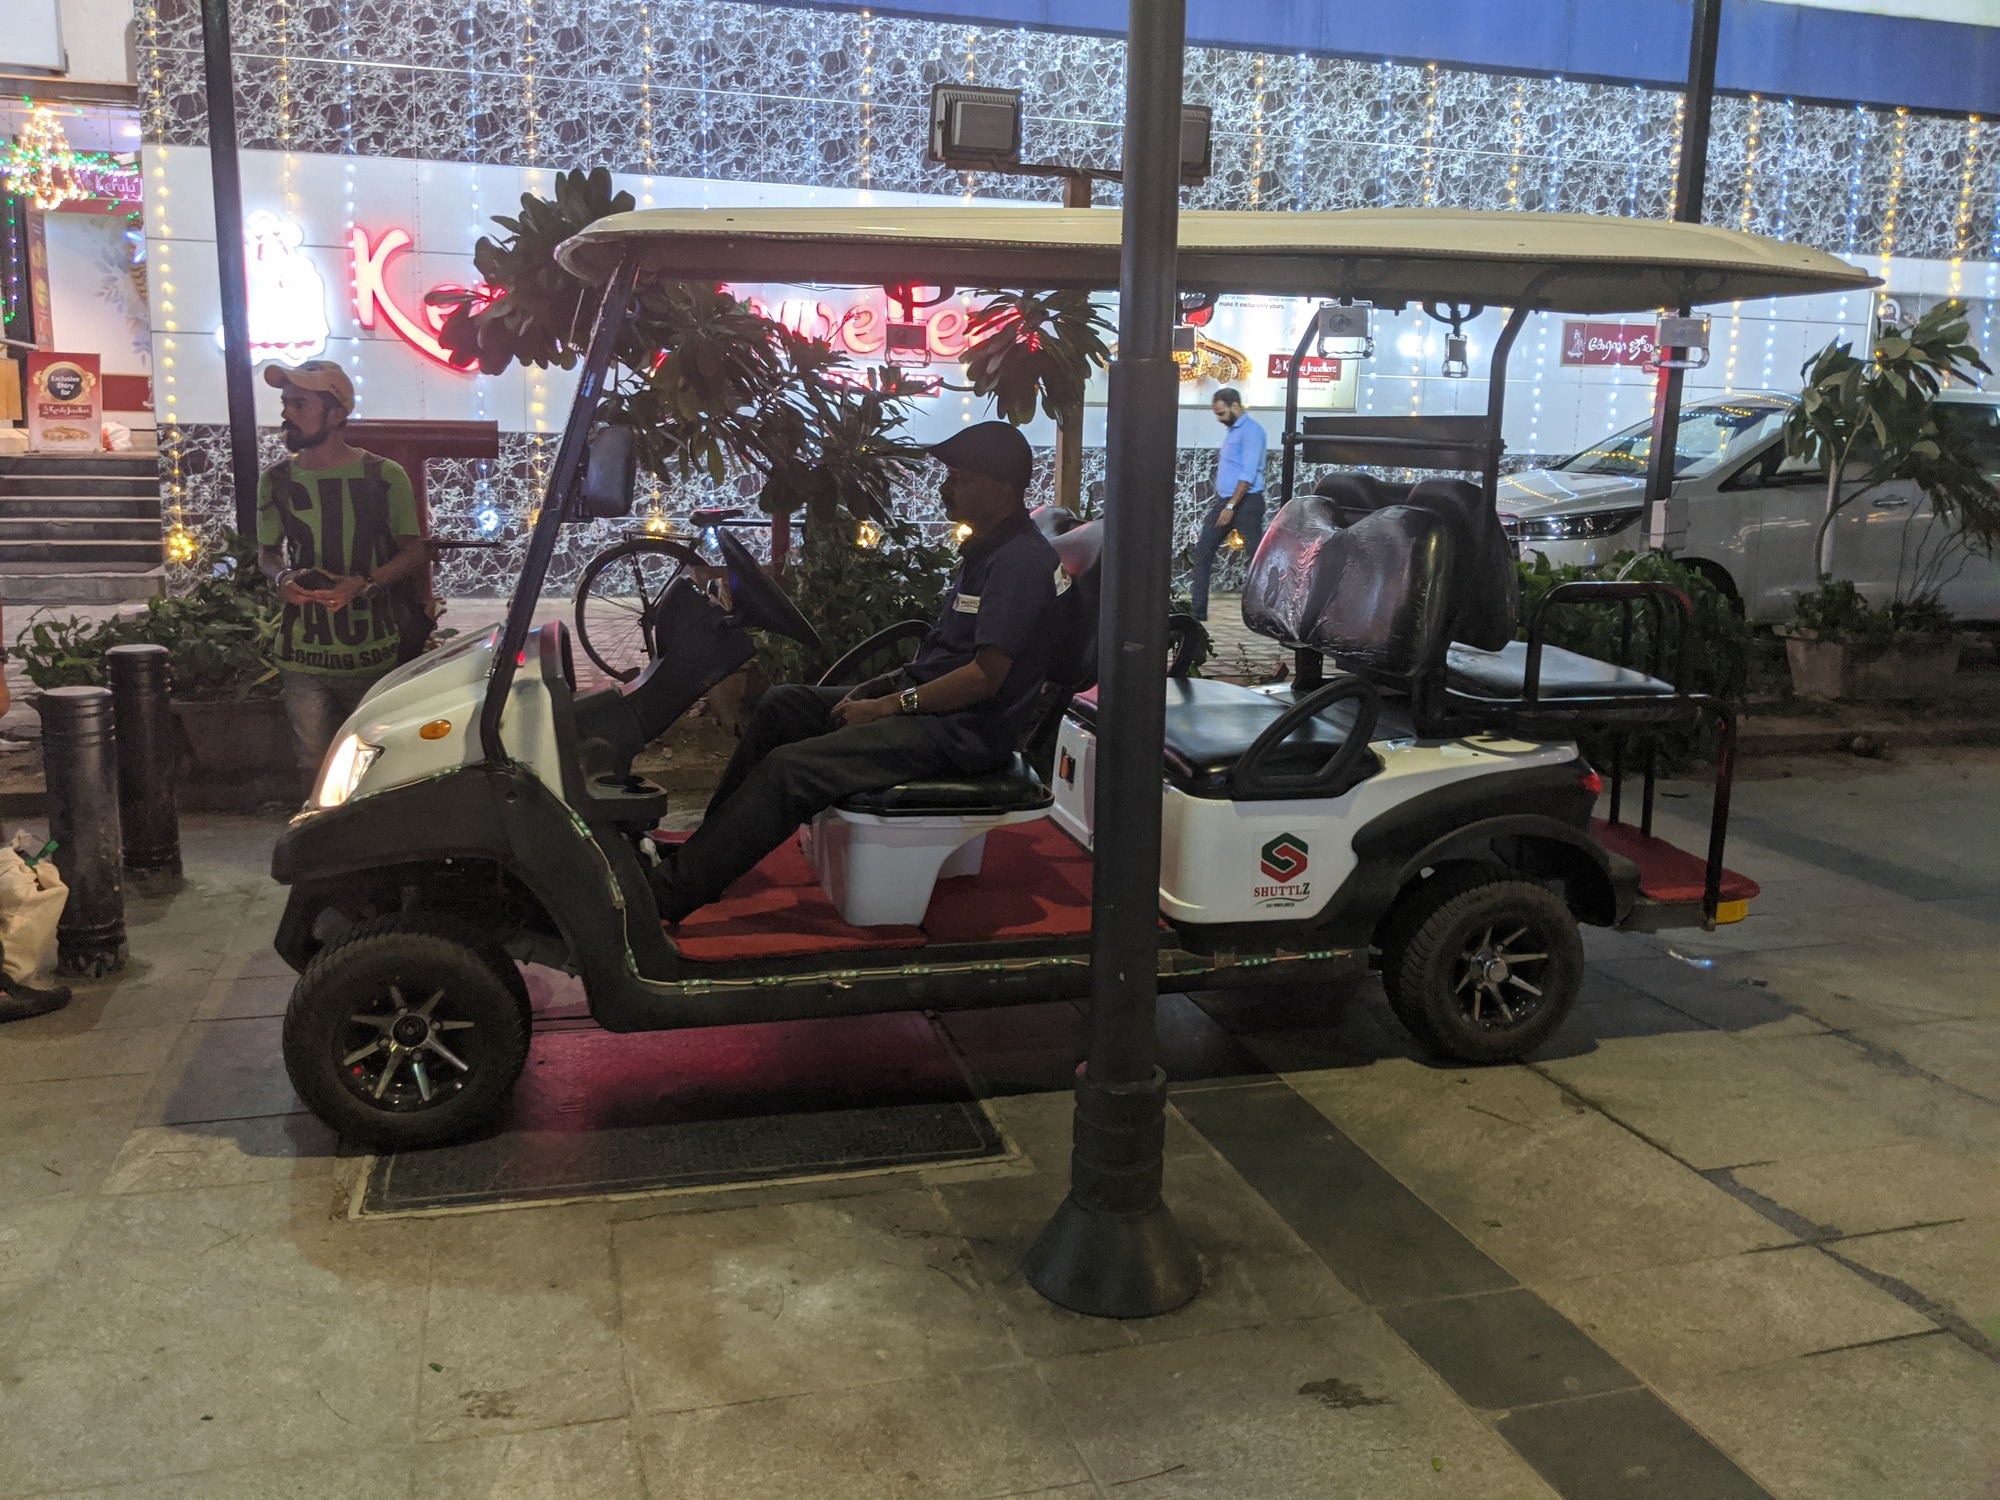 About five of these electric golf carts are said to be available for free to take Senior Citizens around